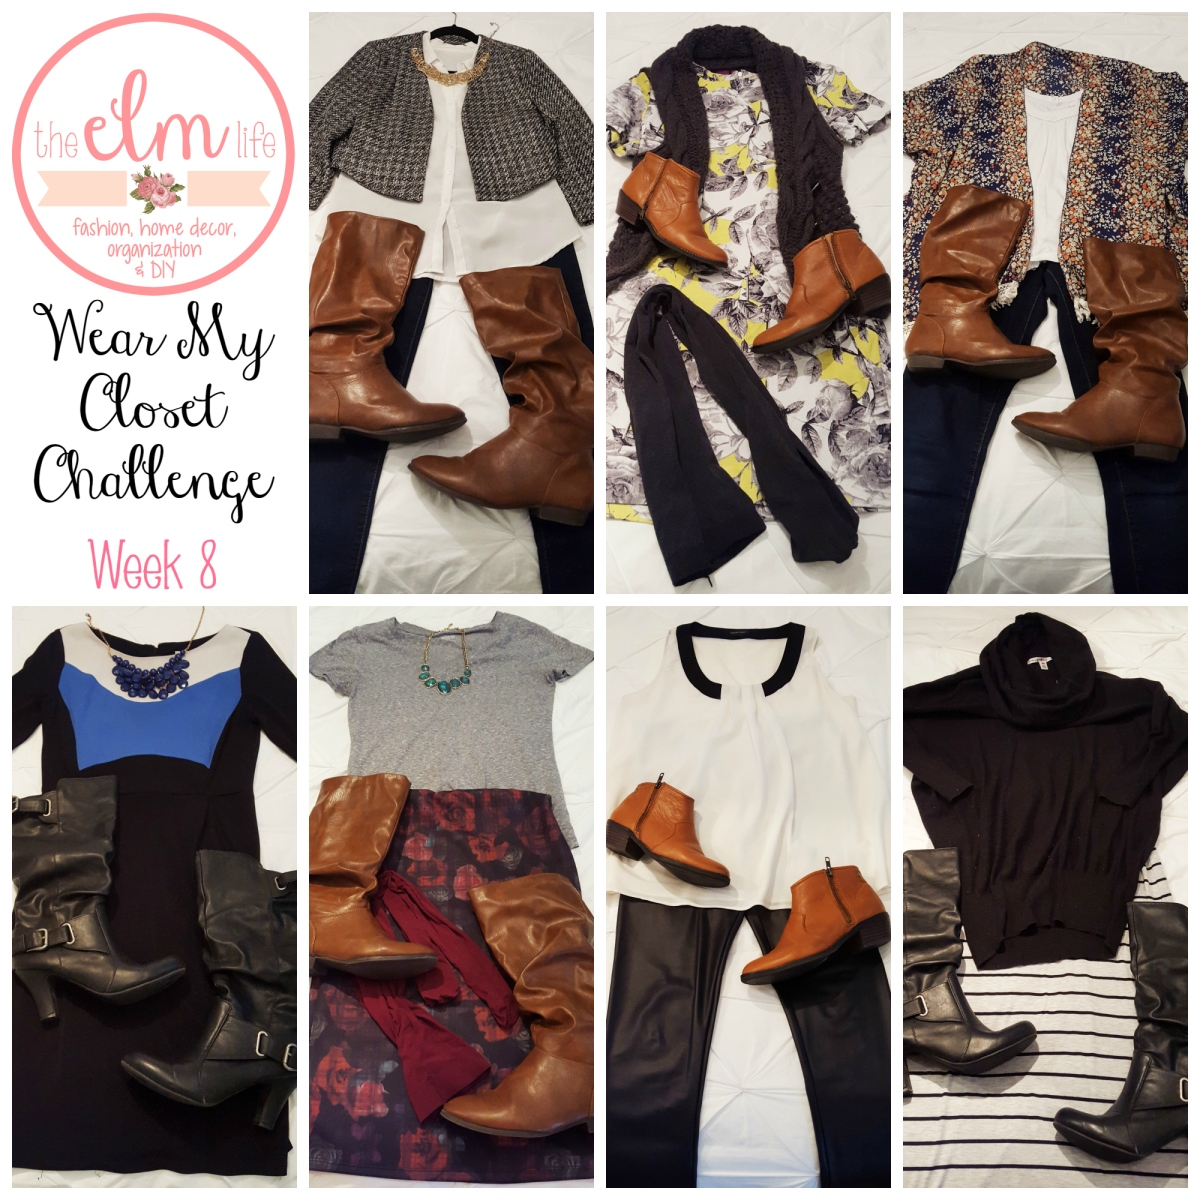 Wear My Closet Challenge - Week 8